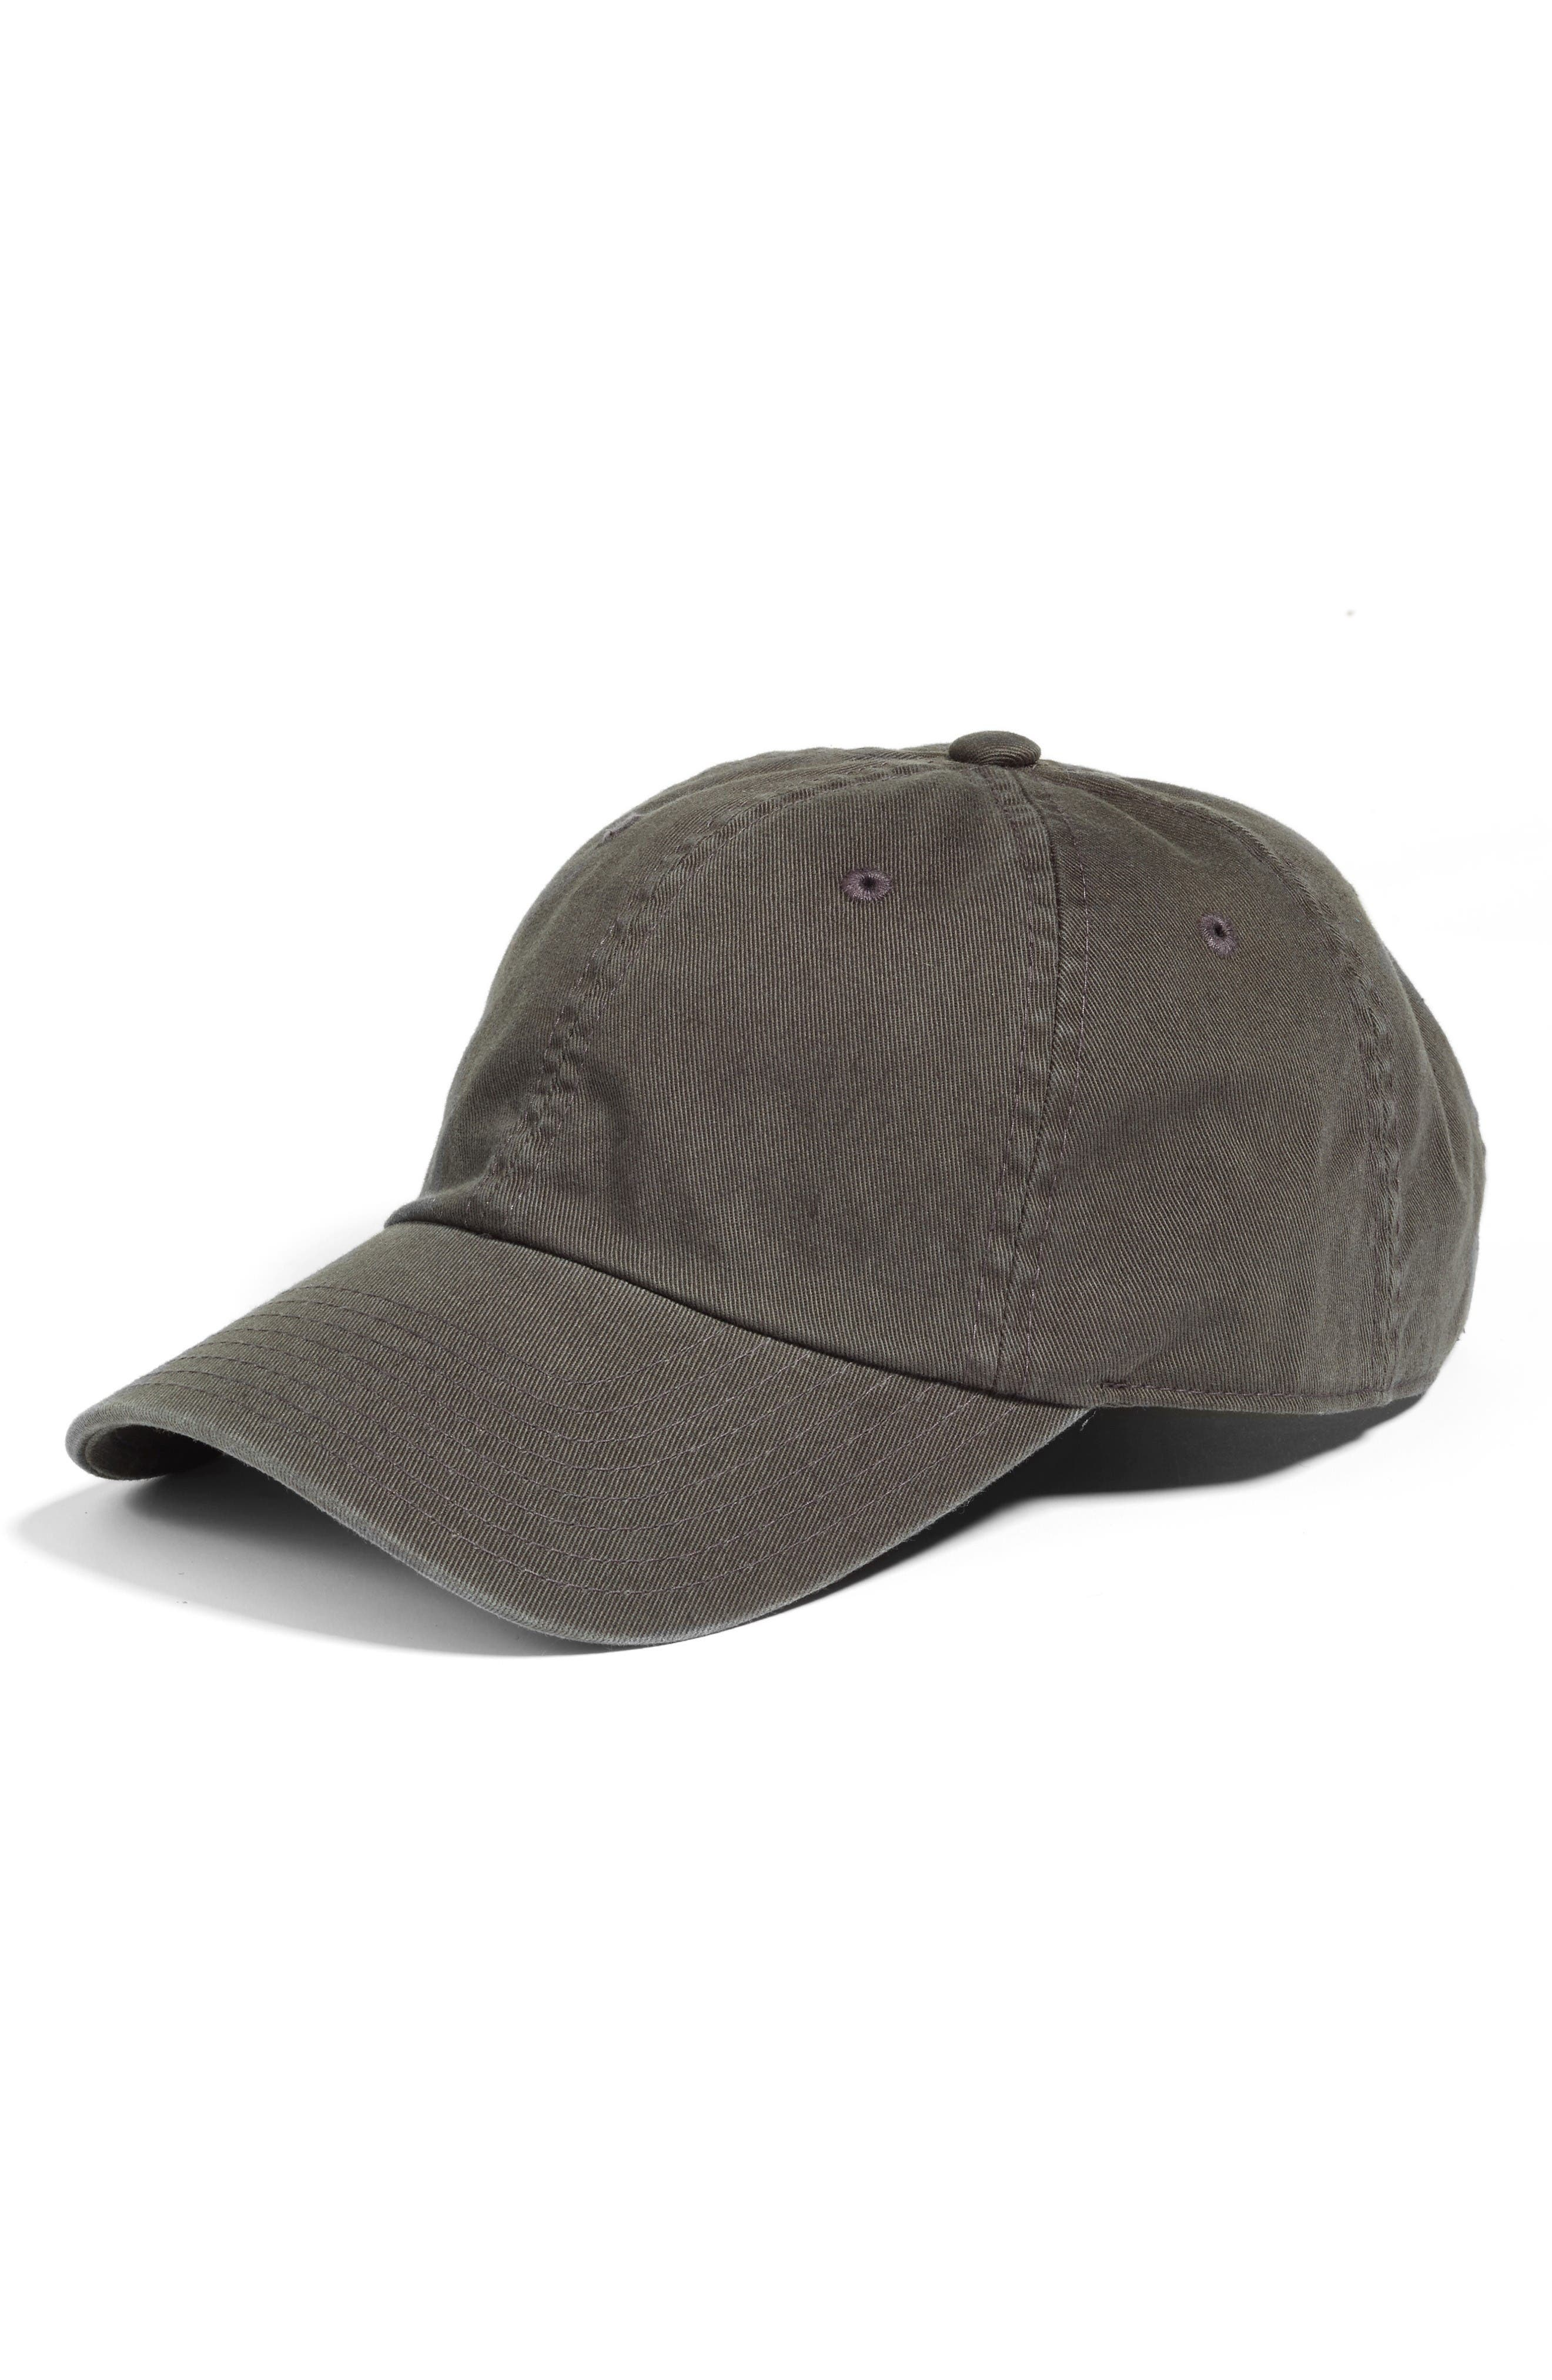 Main Image - American Needle Washed Cotton Baseball Cap